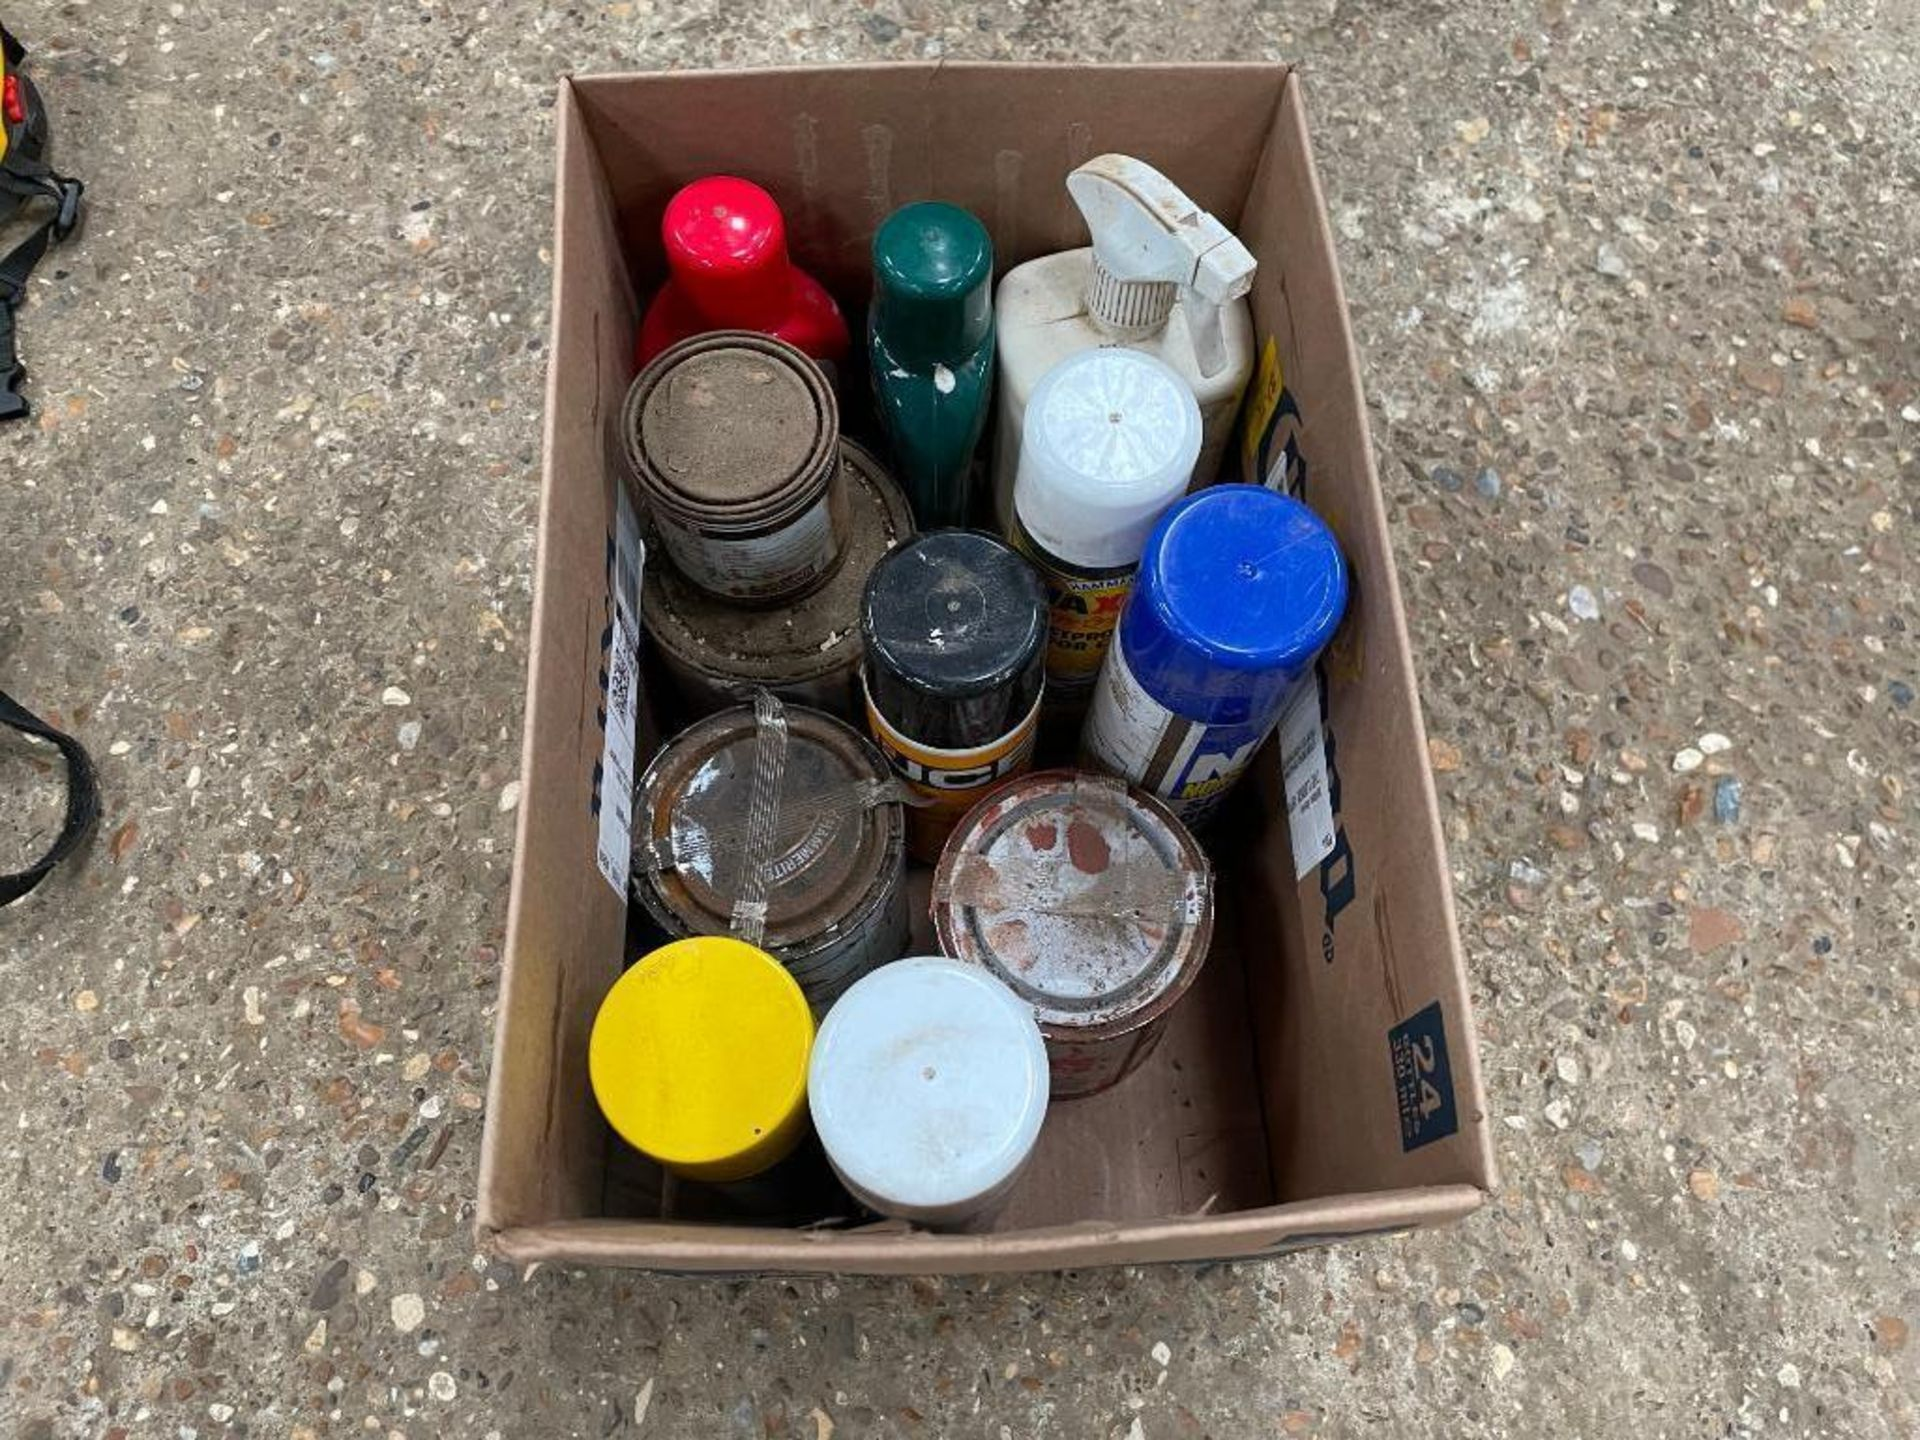 Quantity paints and cleaners